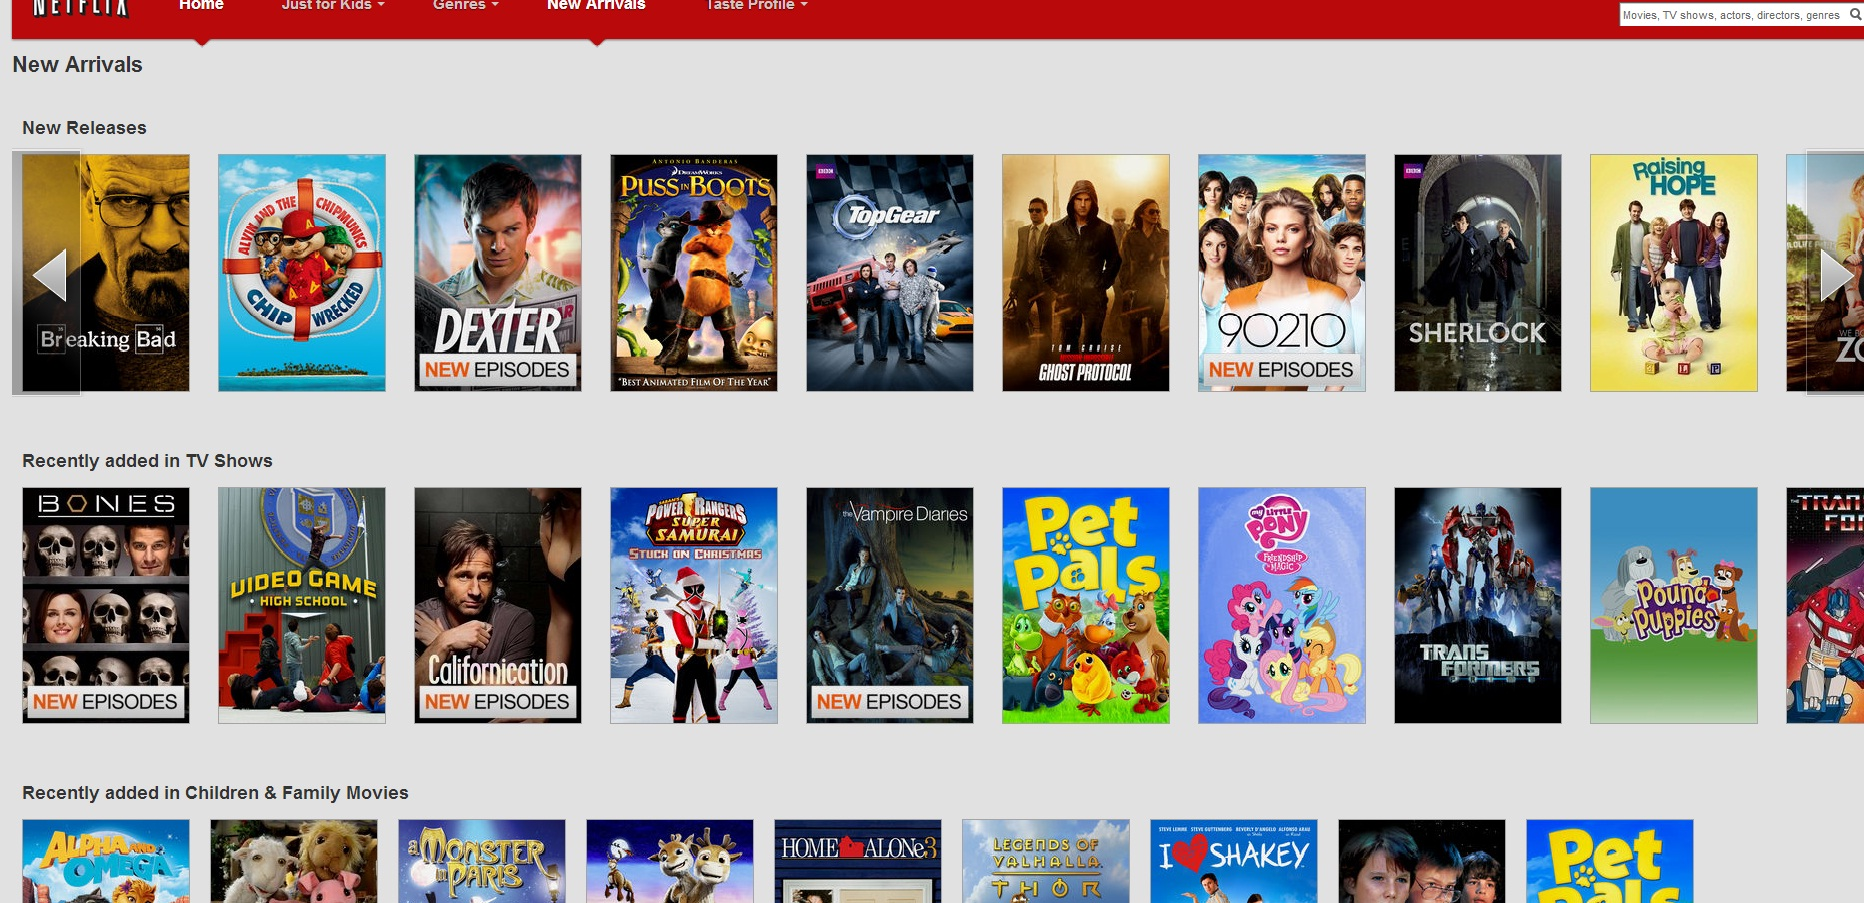 Netflix online release dates in Brisbane